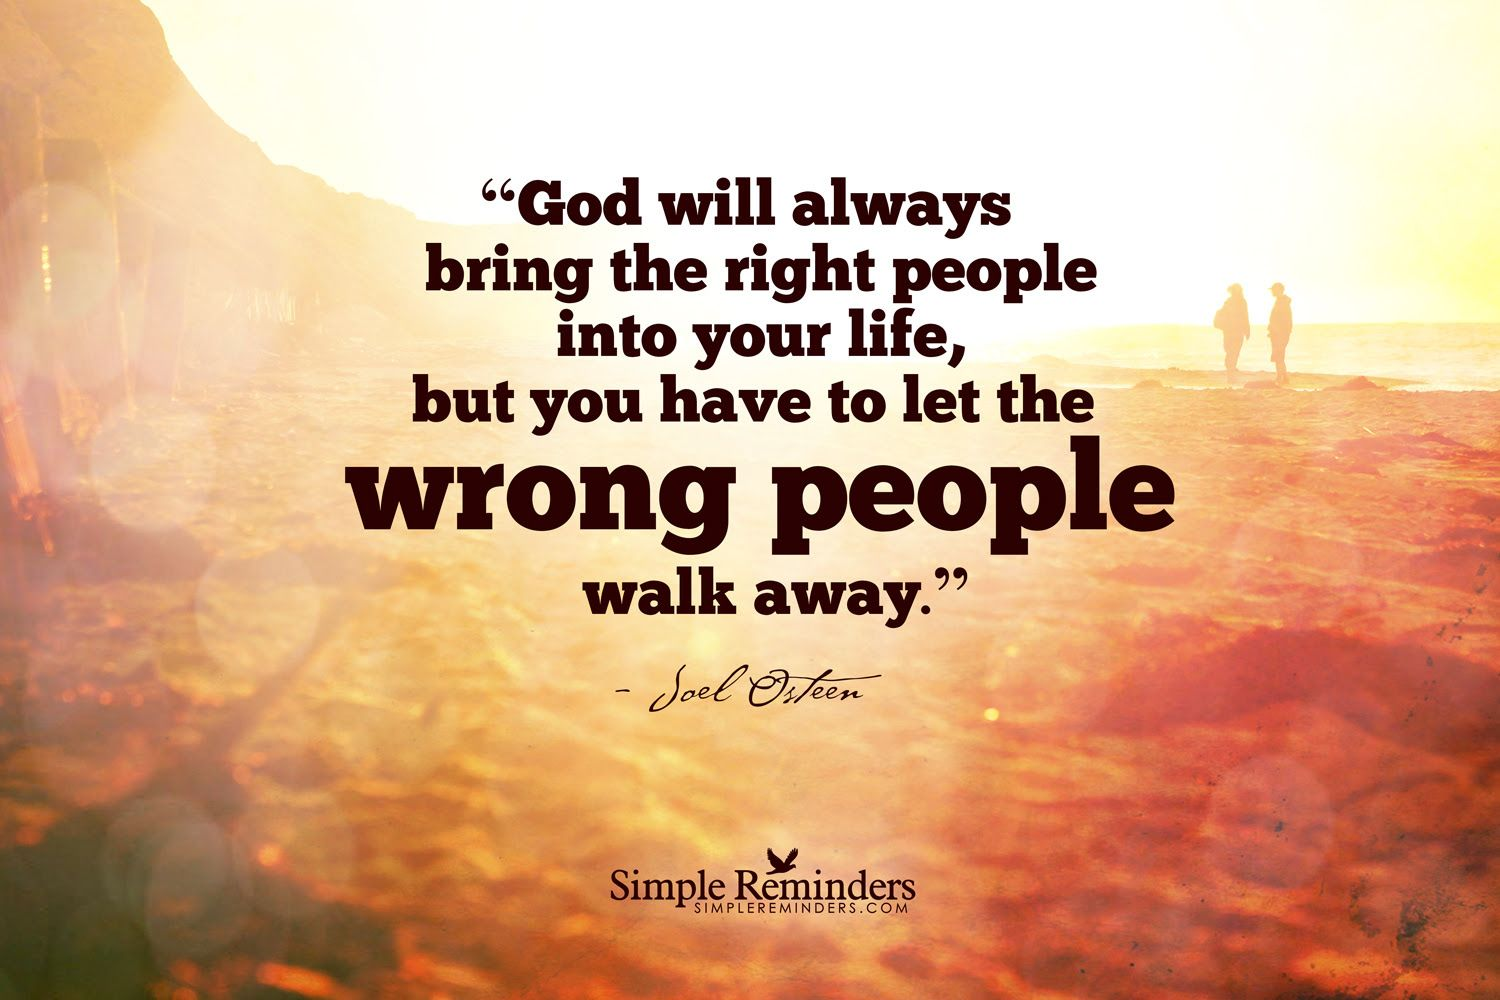 Let the wrong people go | Quotes to live by, Joel osteen